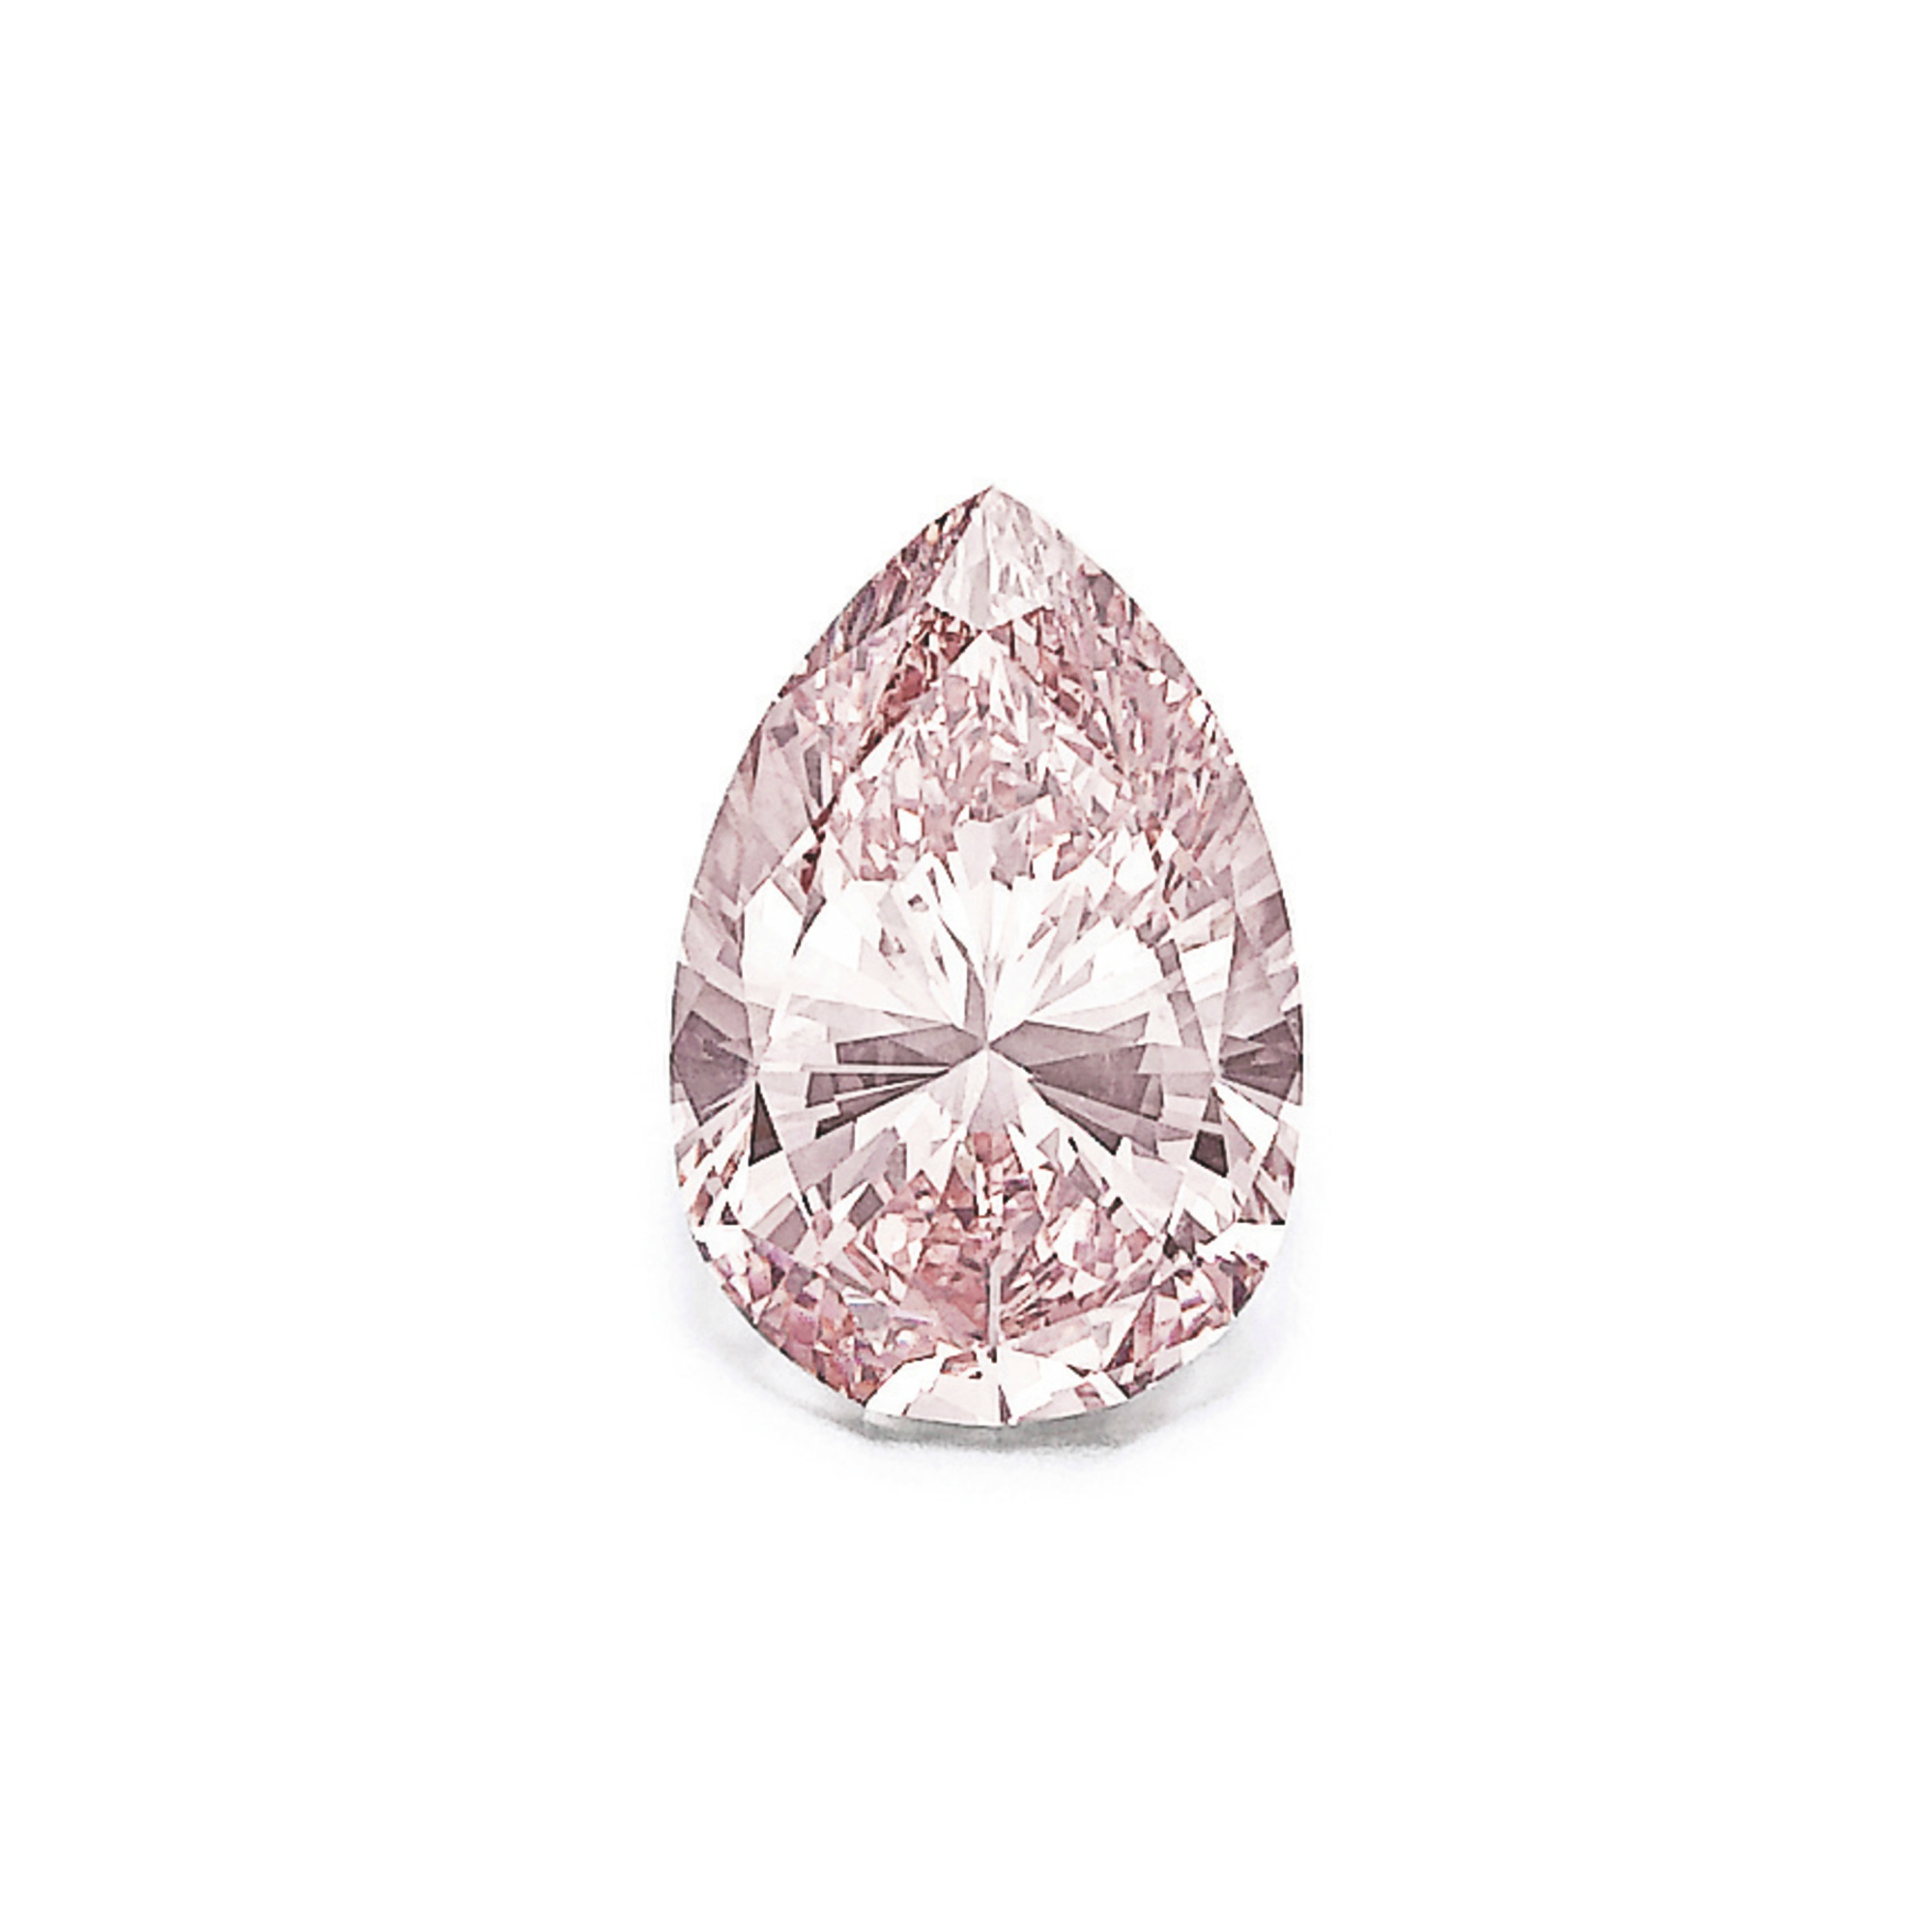 polish gold pear has invest captivating item and fancy baby light pink with internally shape good group color property carat diamond a wonderful clarity the perfect flawless symmetry stone